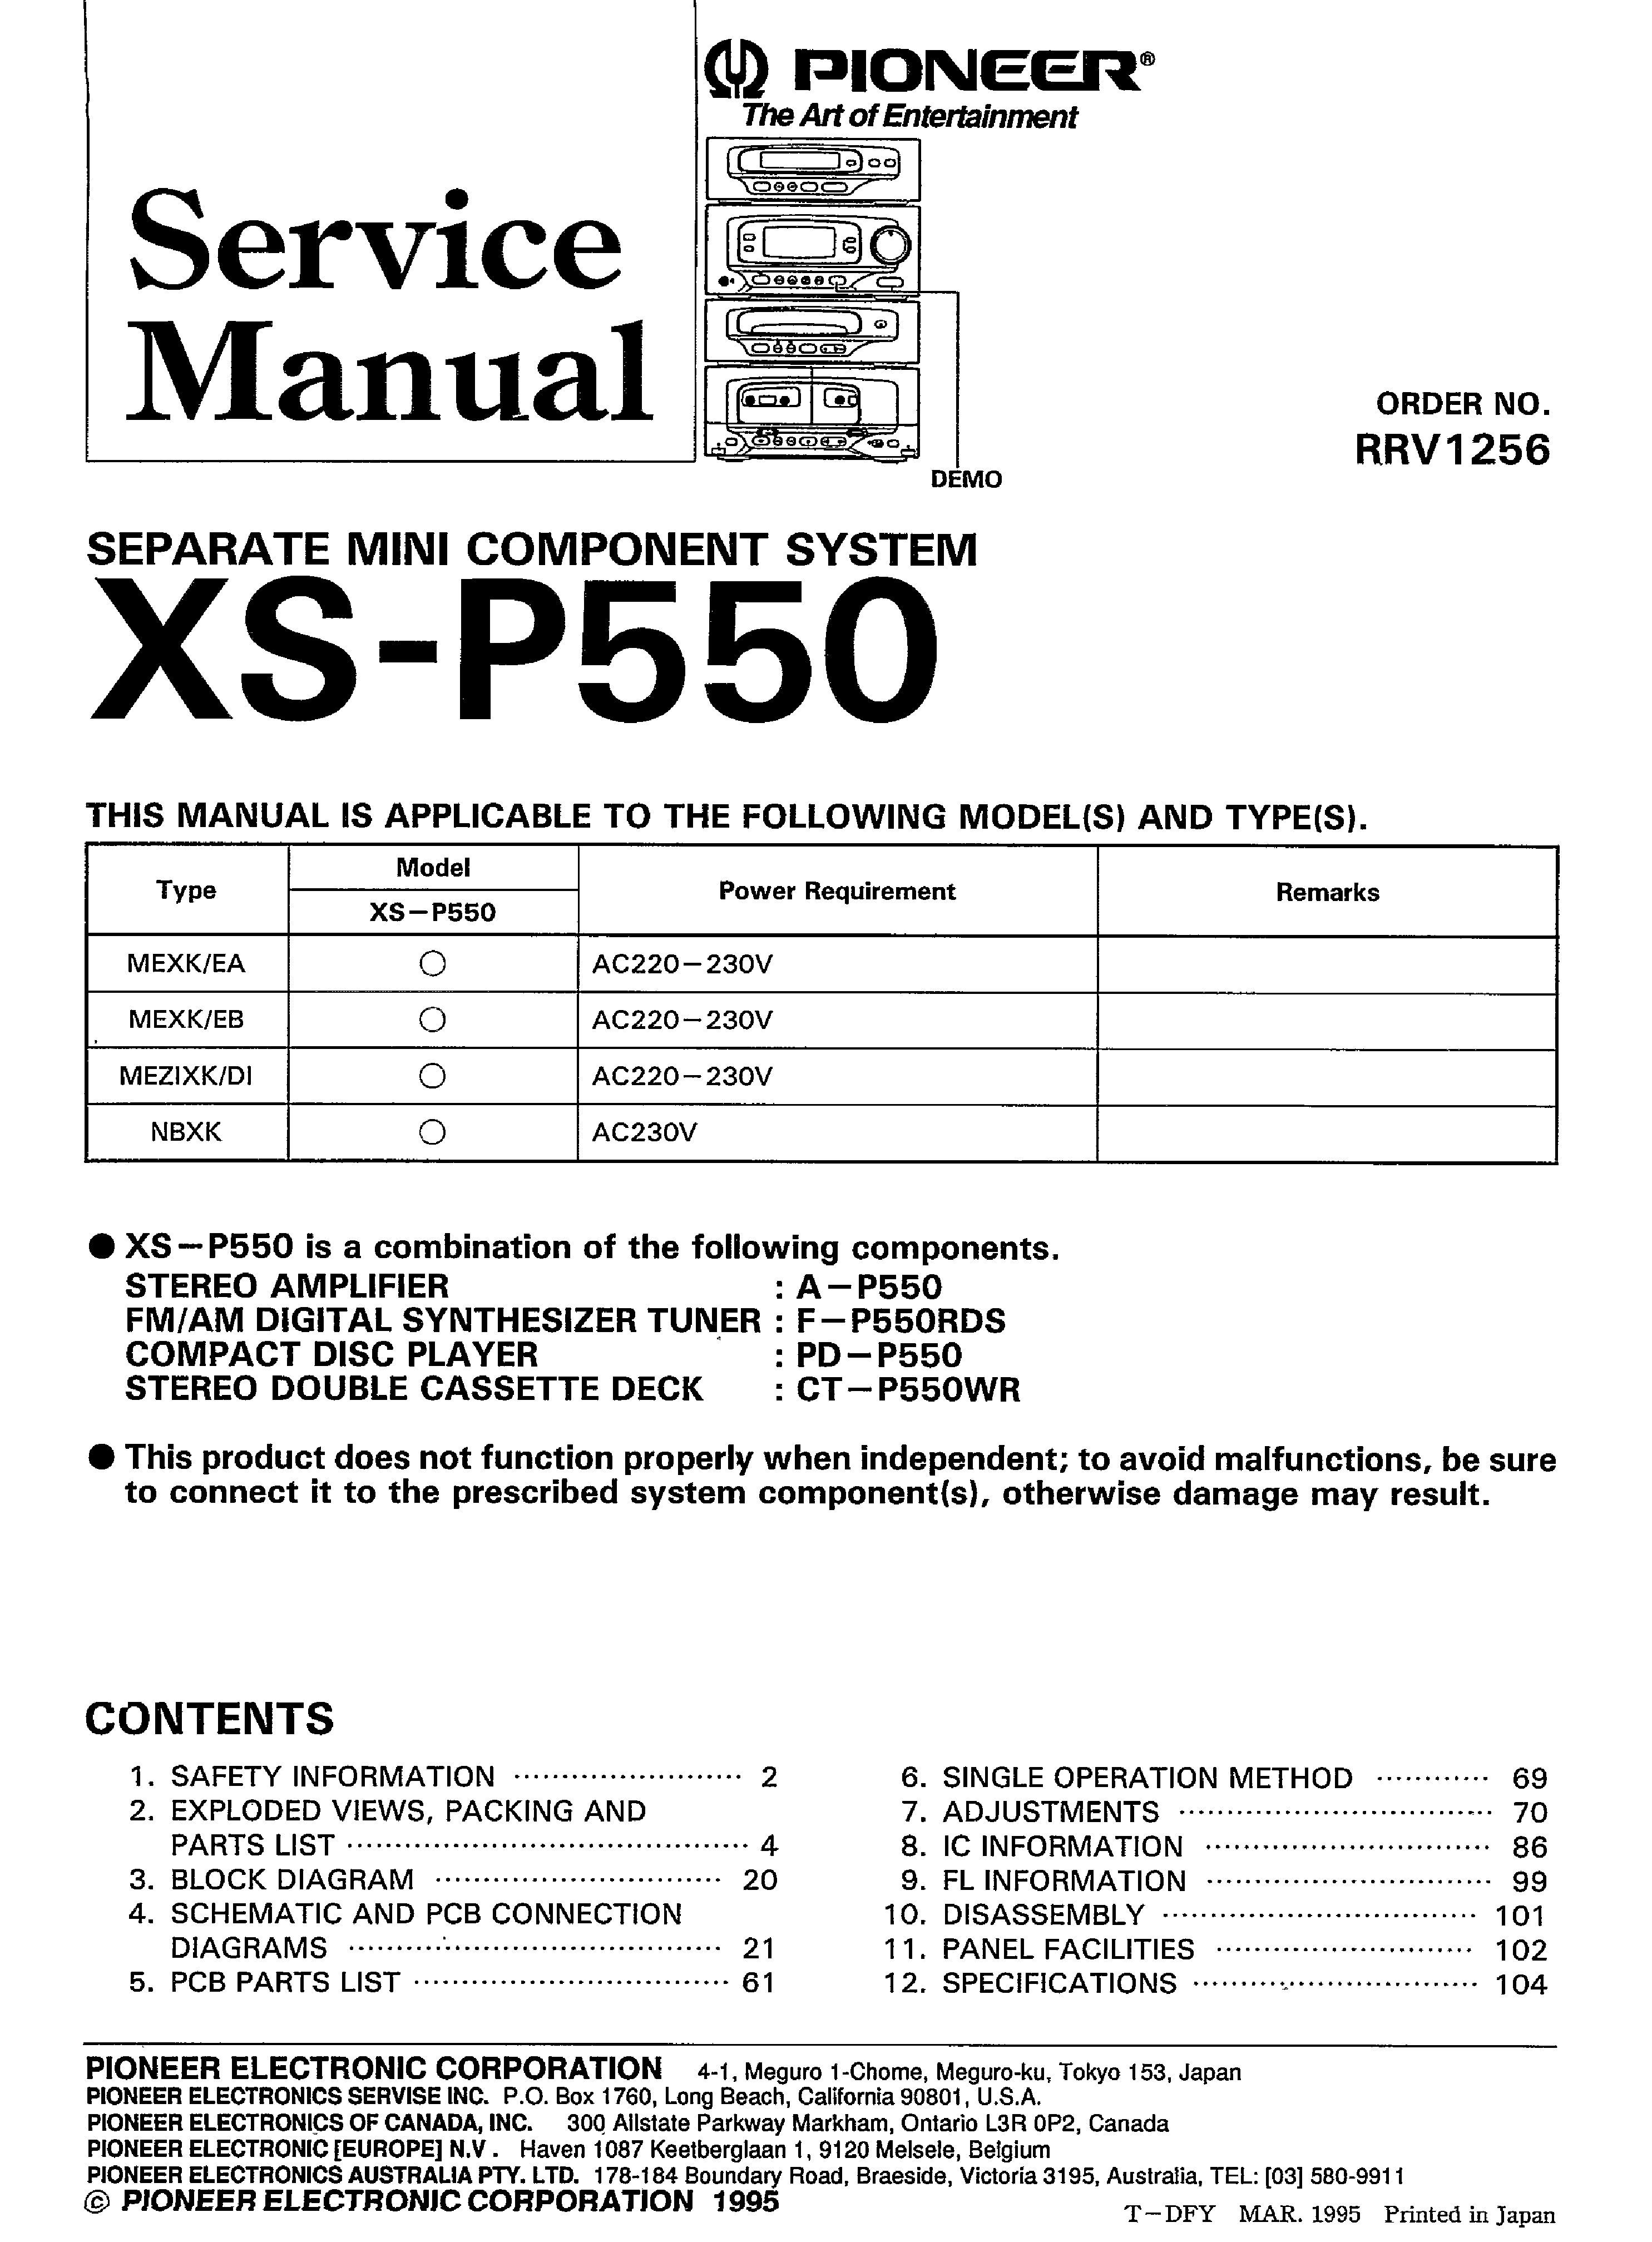 PIONEER XS-P550 service manual (1st page)